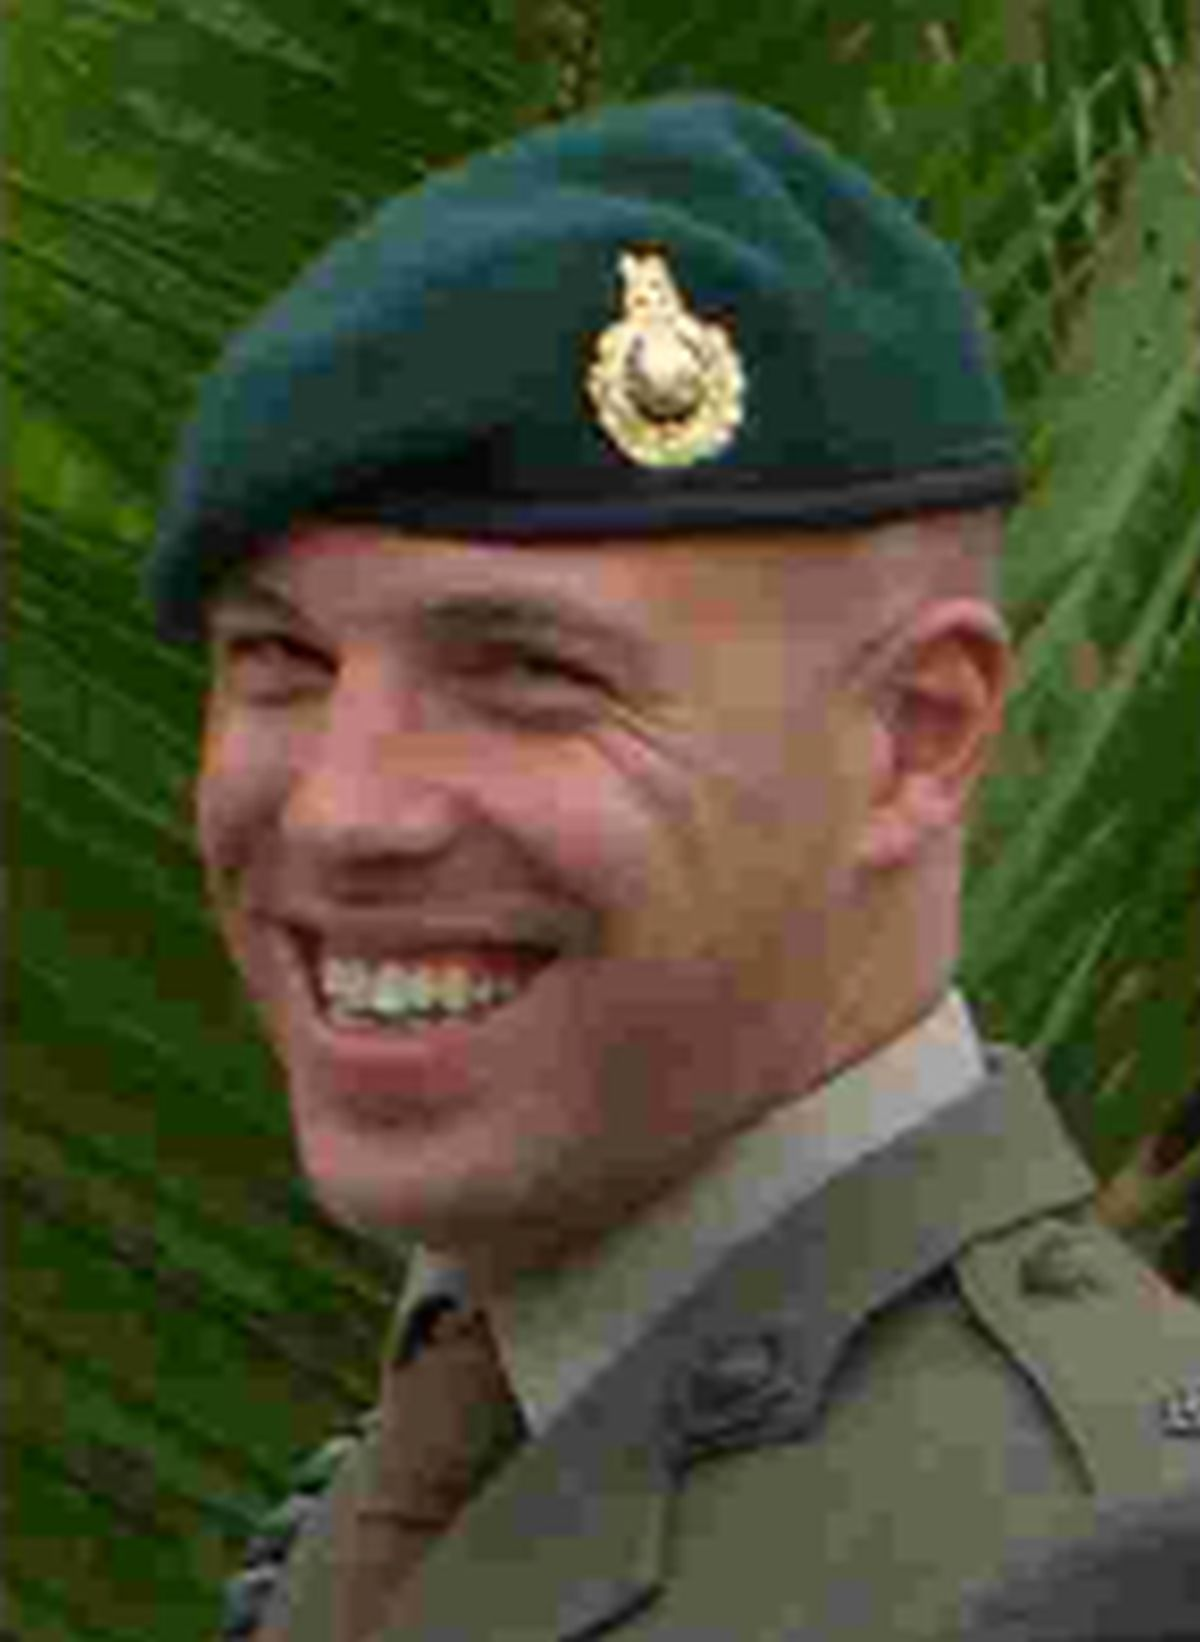 A memorial tablet dedicated to two Royal Marines killed in Afghanistan unveiled Sunday